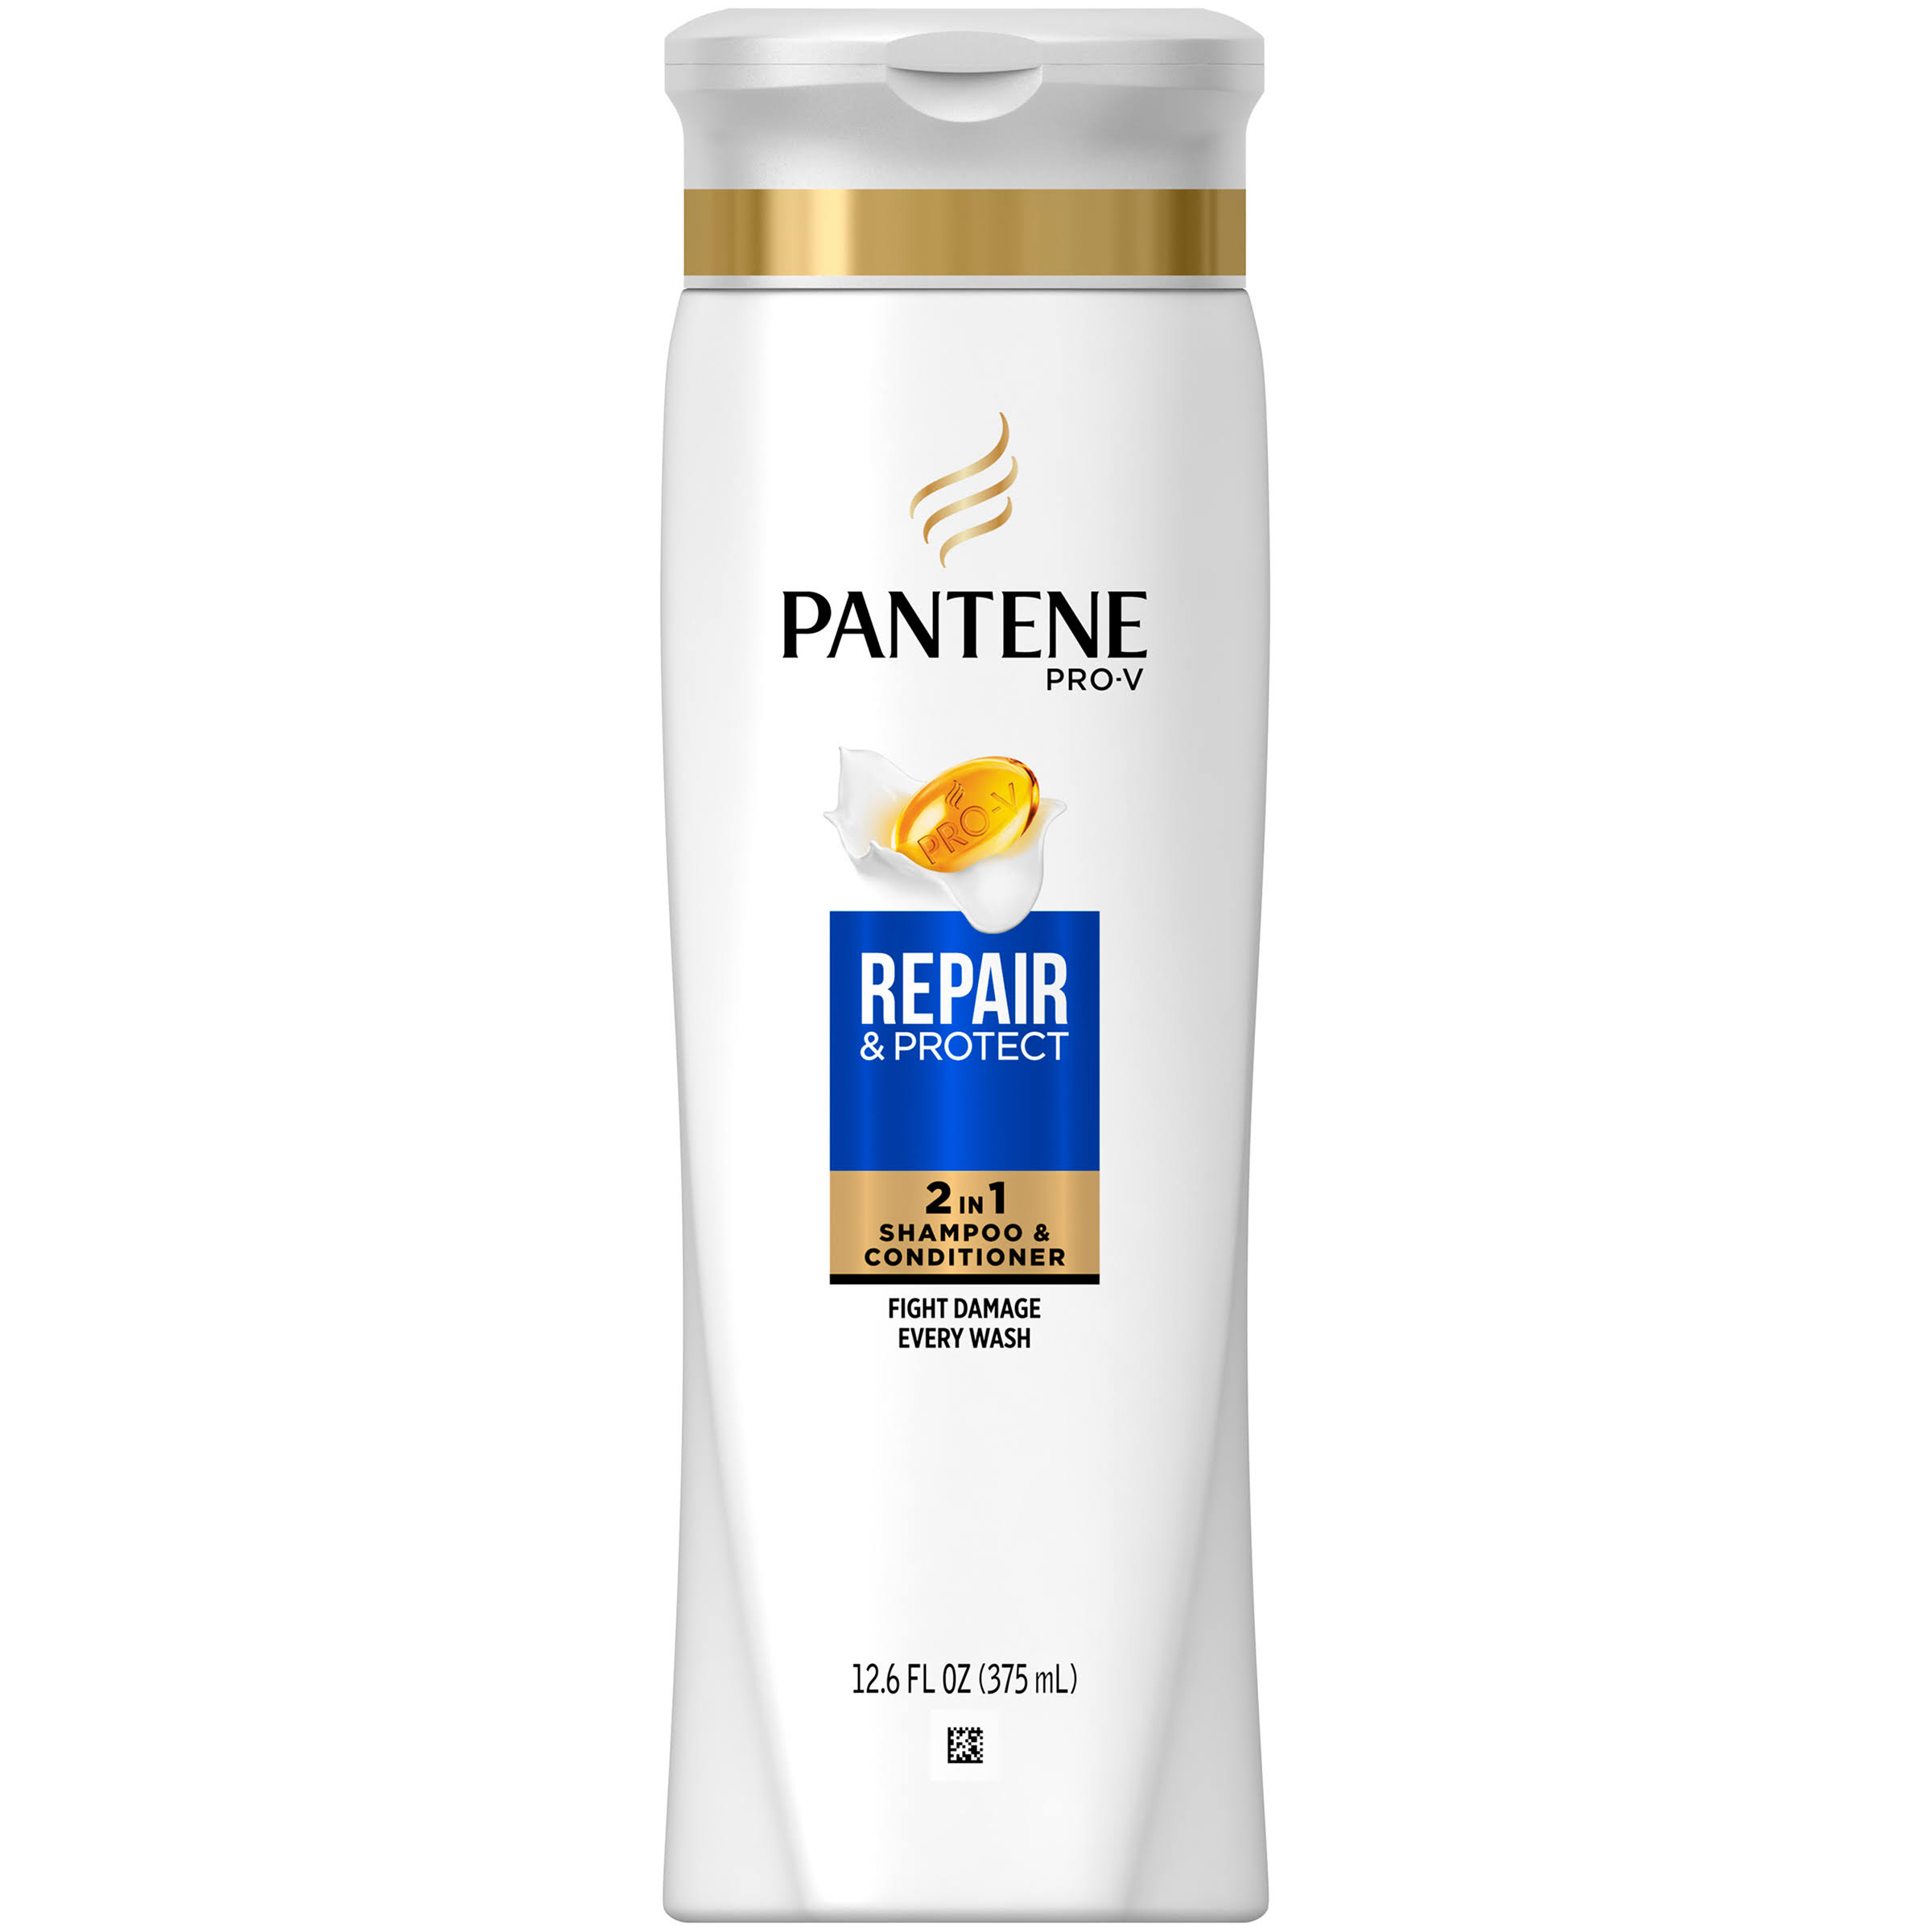 Pantene Pro-V Repair & Protect 2 in 1 Shampoo & Conditioner - 12.6oz